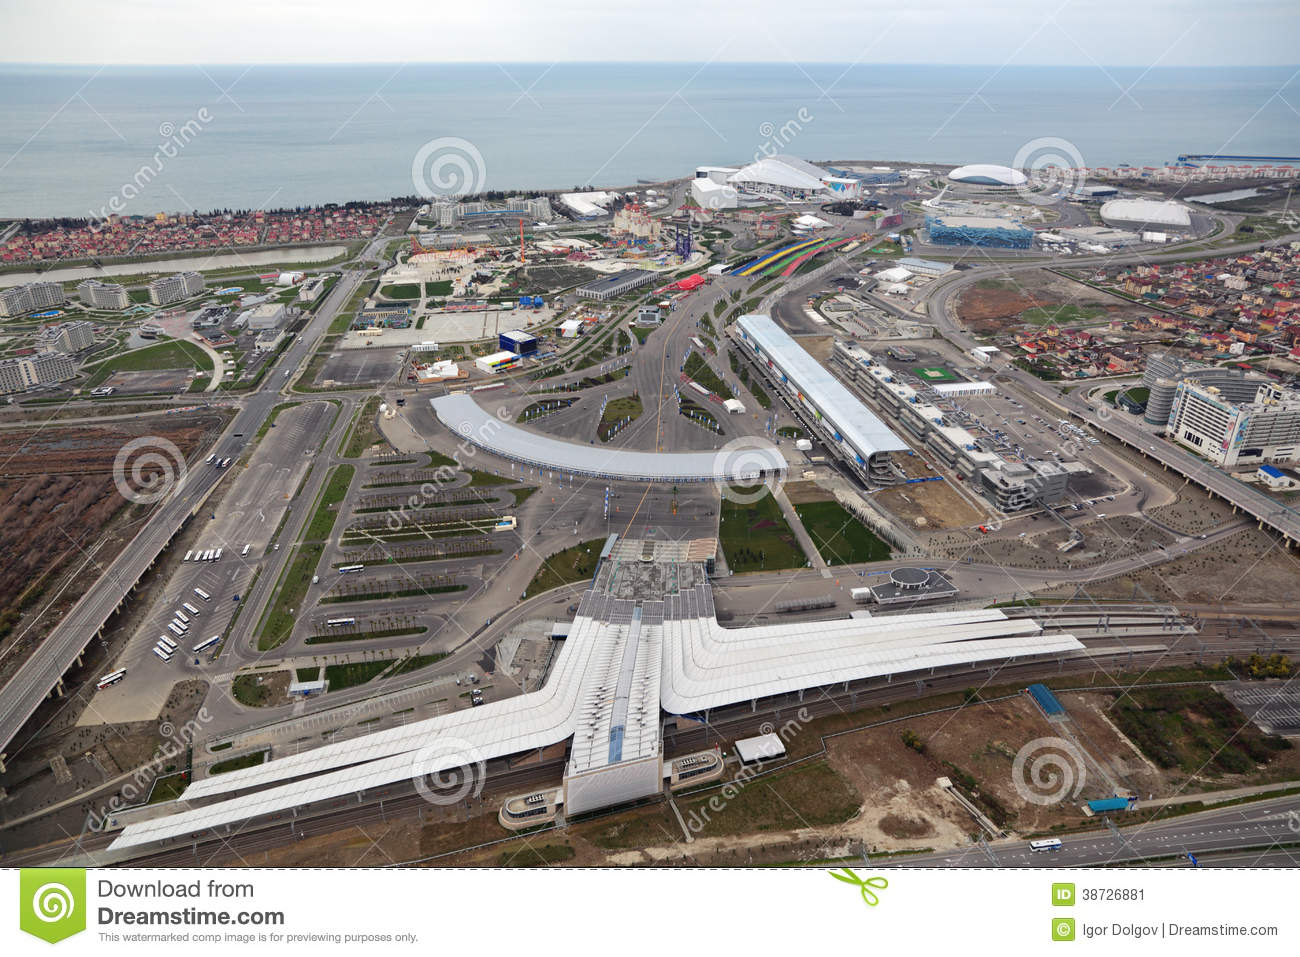 Adler Russia  city photos gallery : SOCHI, ADLER, RUSSIA MAR 02, 2014: Olympic Park and train station in ...